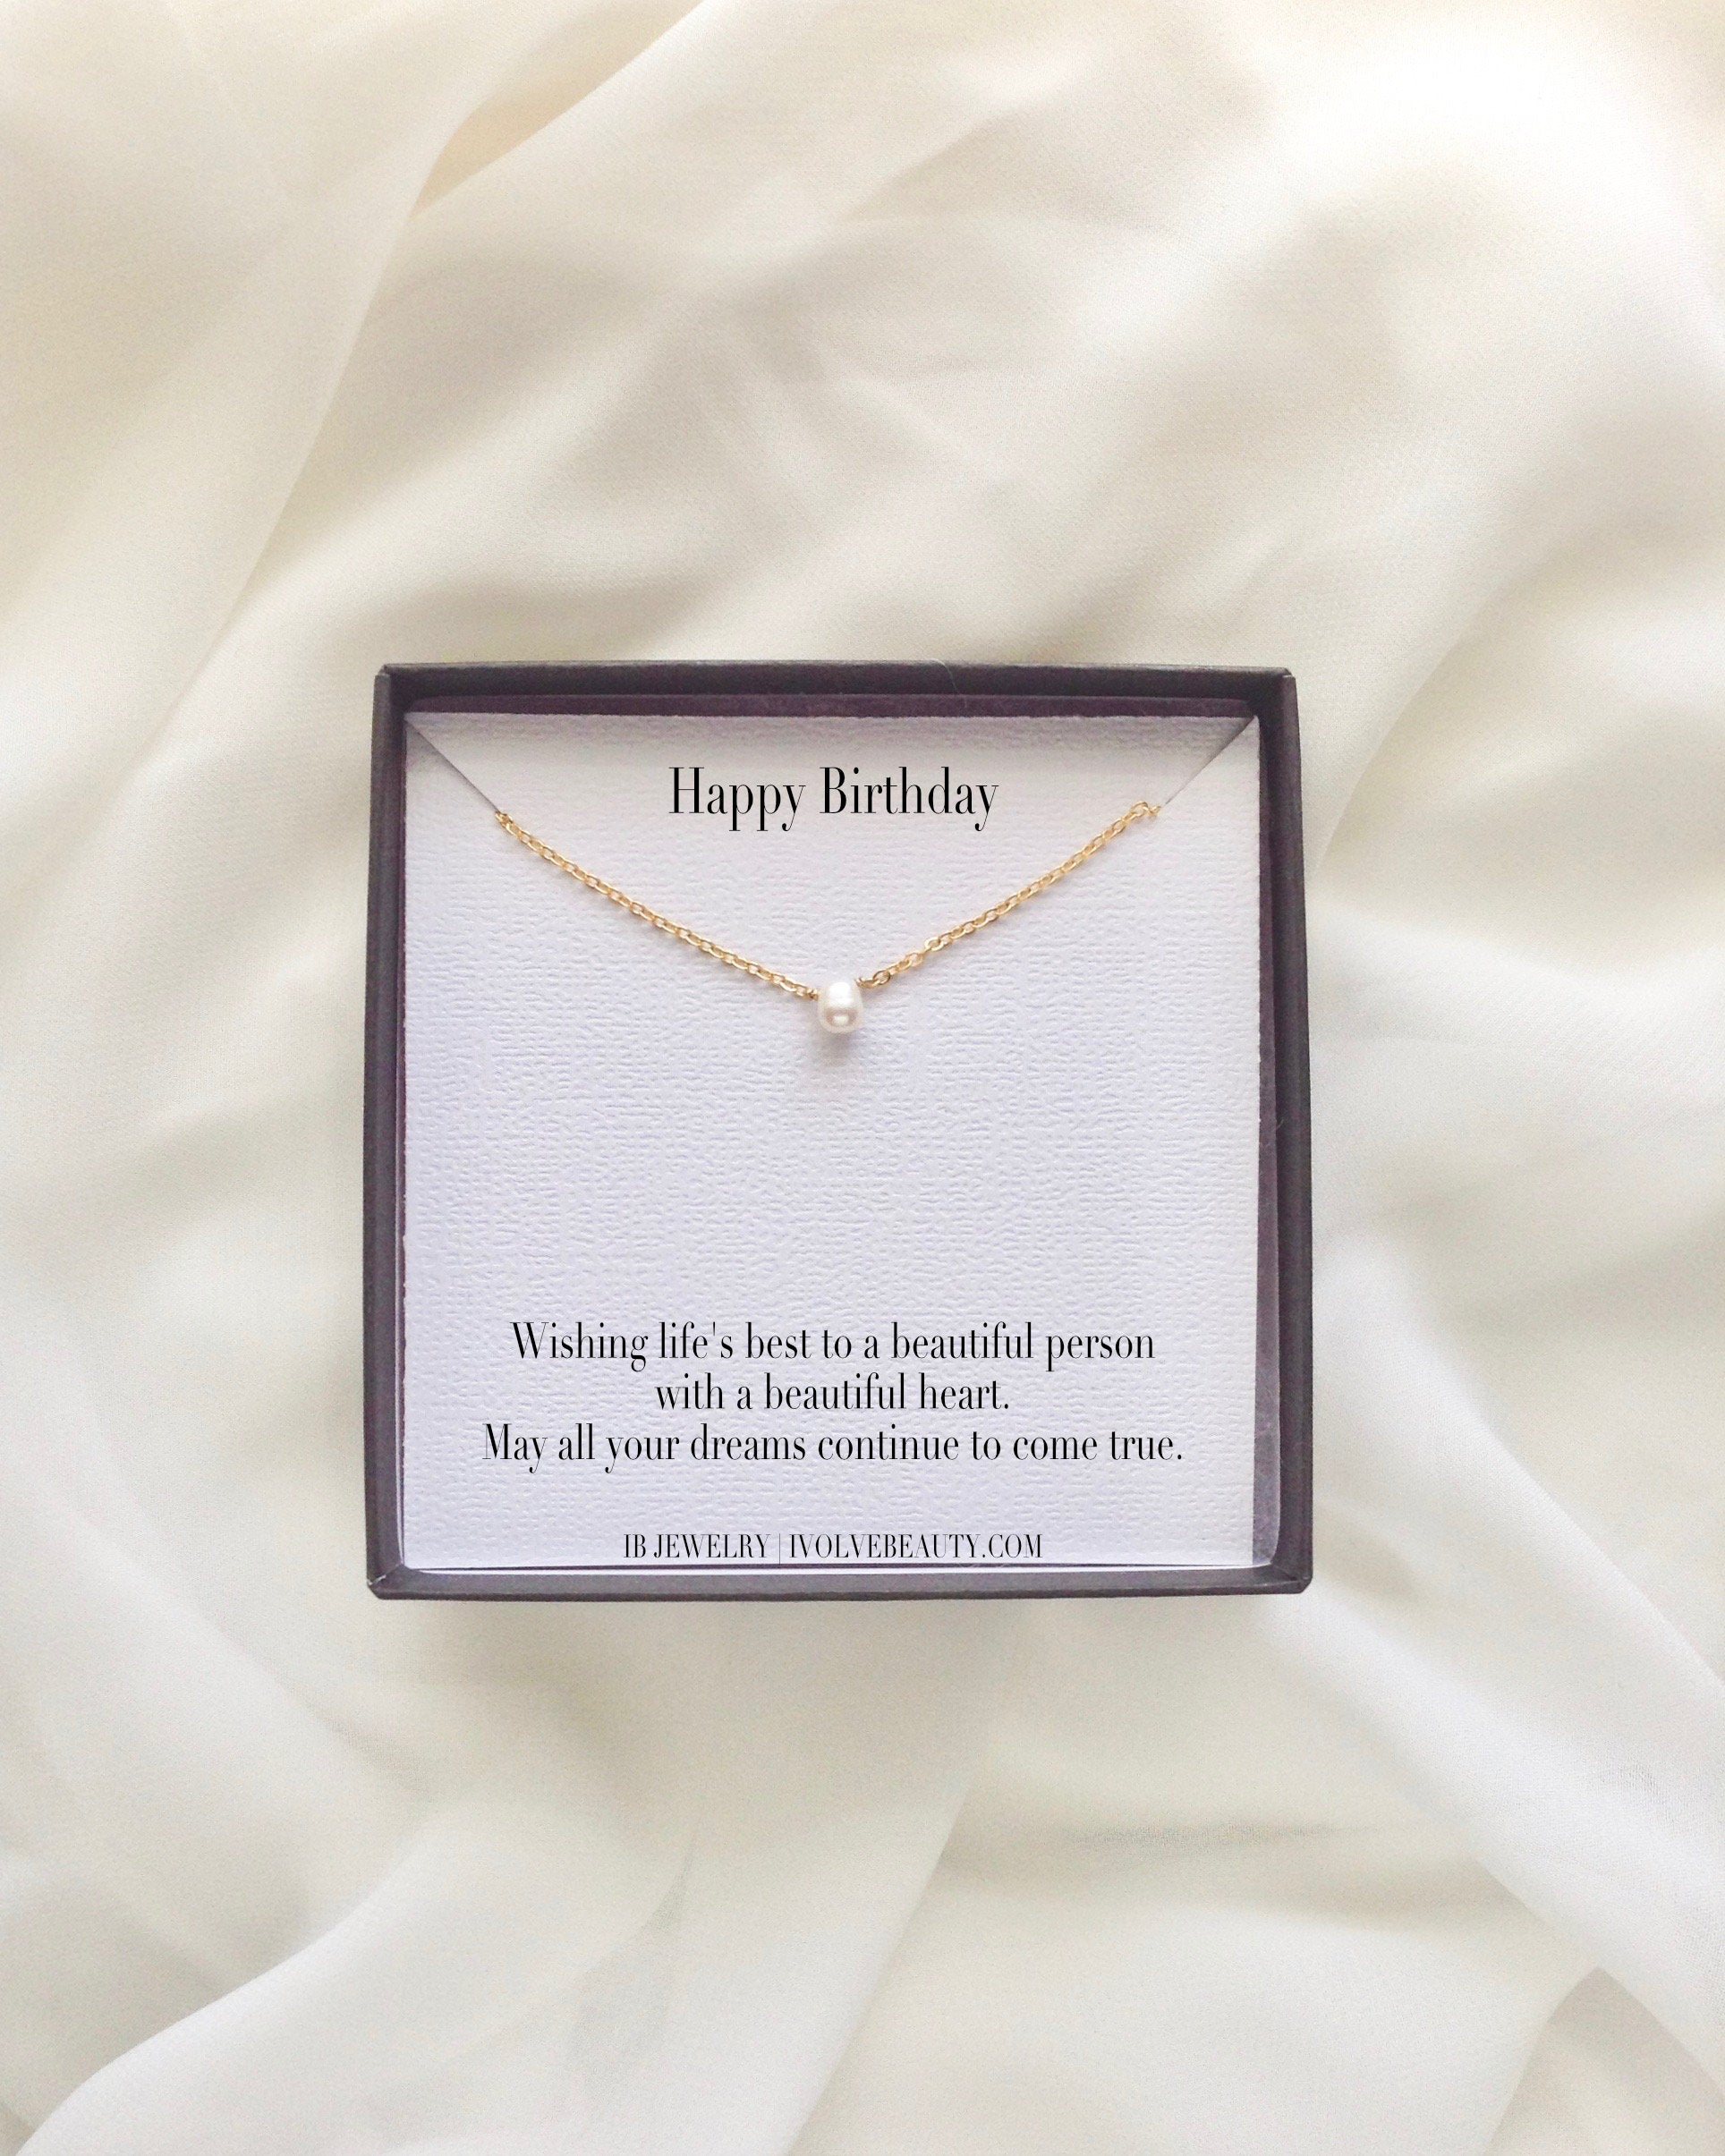 Happy Birthday Meaningful Necklace Gift | Encouragement Necklace | IB Jewelry